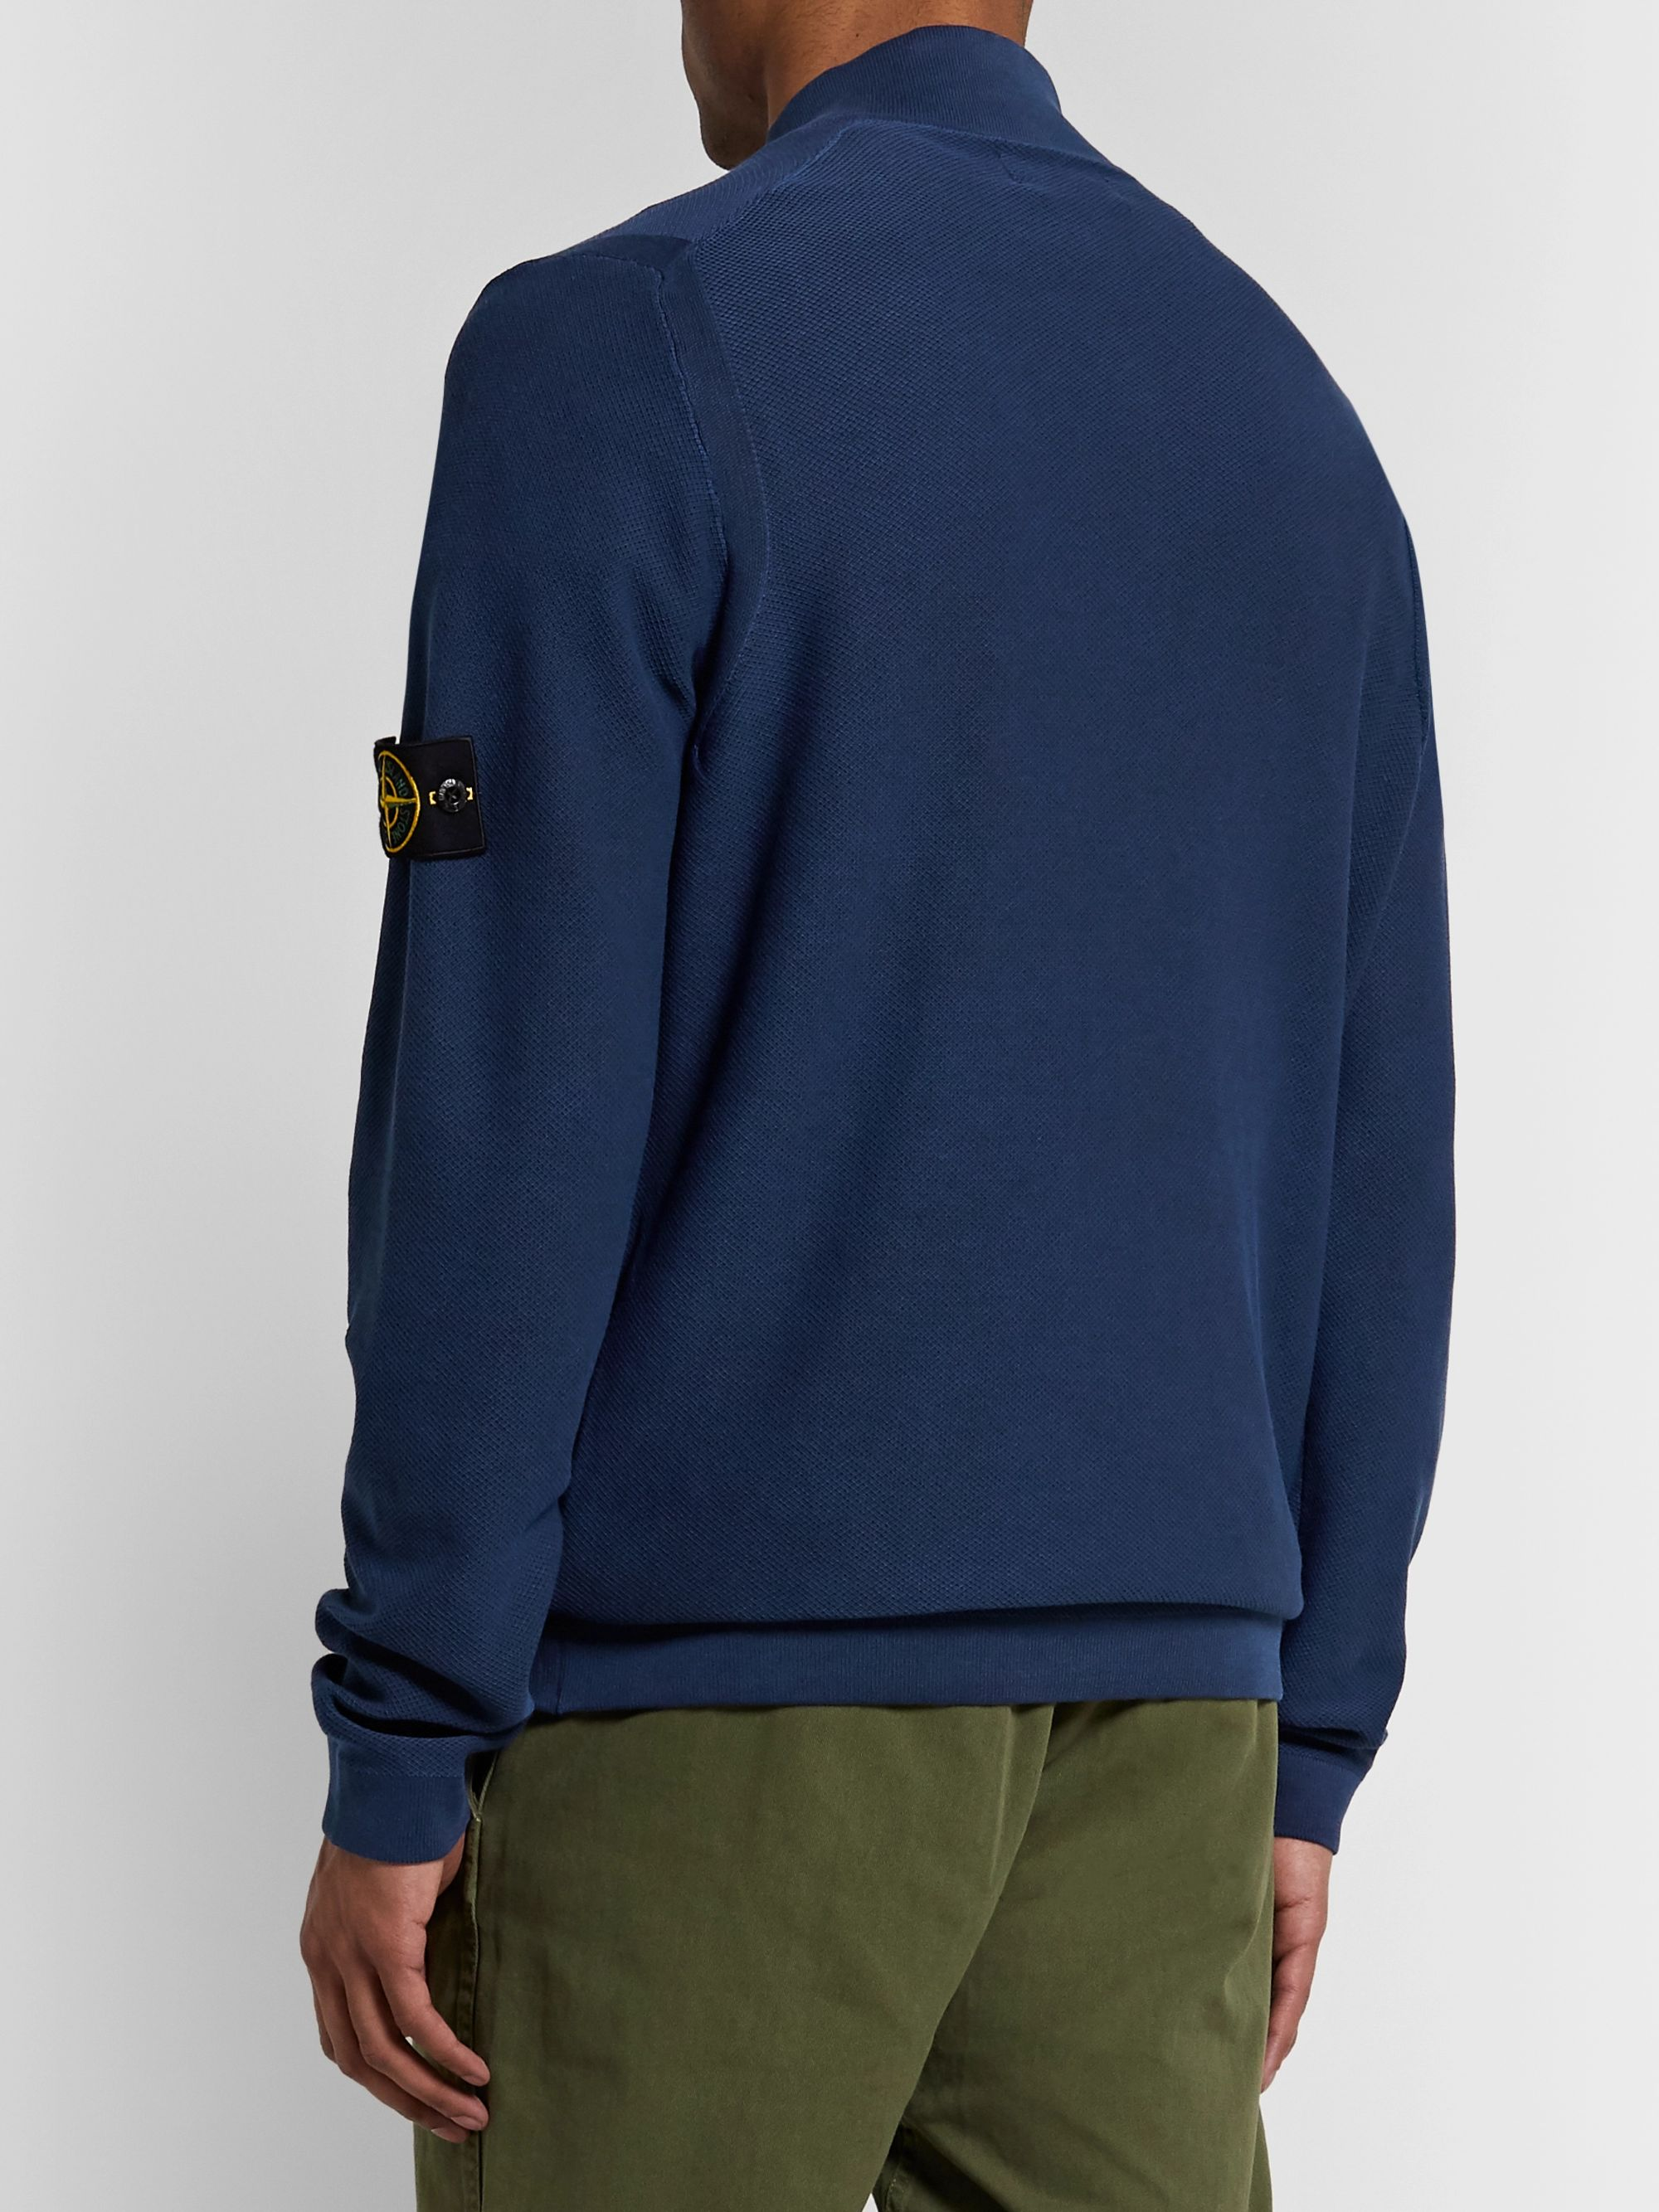 Stone Island Logo-Appliquéd Cotton-Piqué Half-Zip Sweater